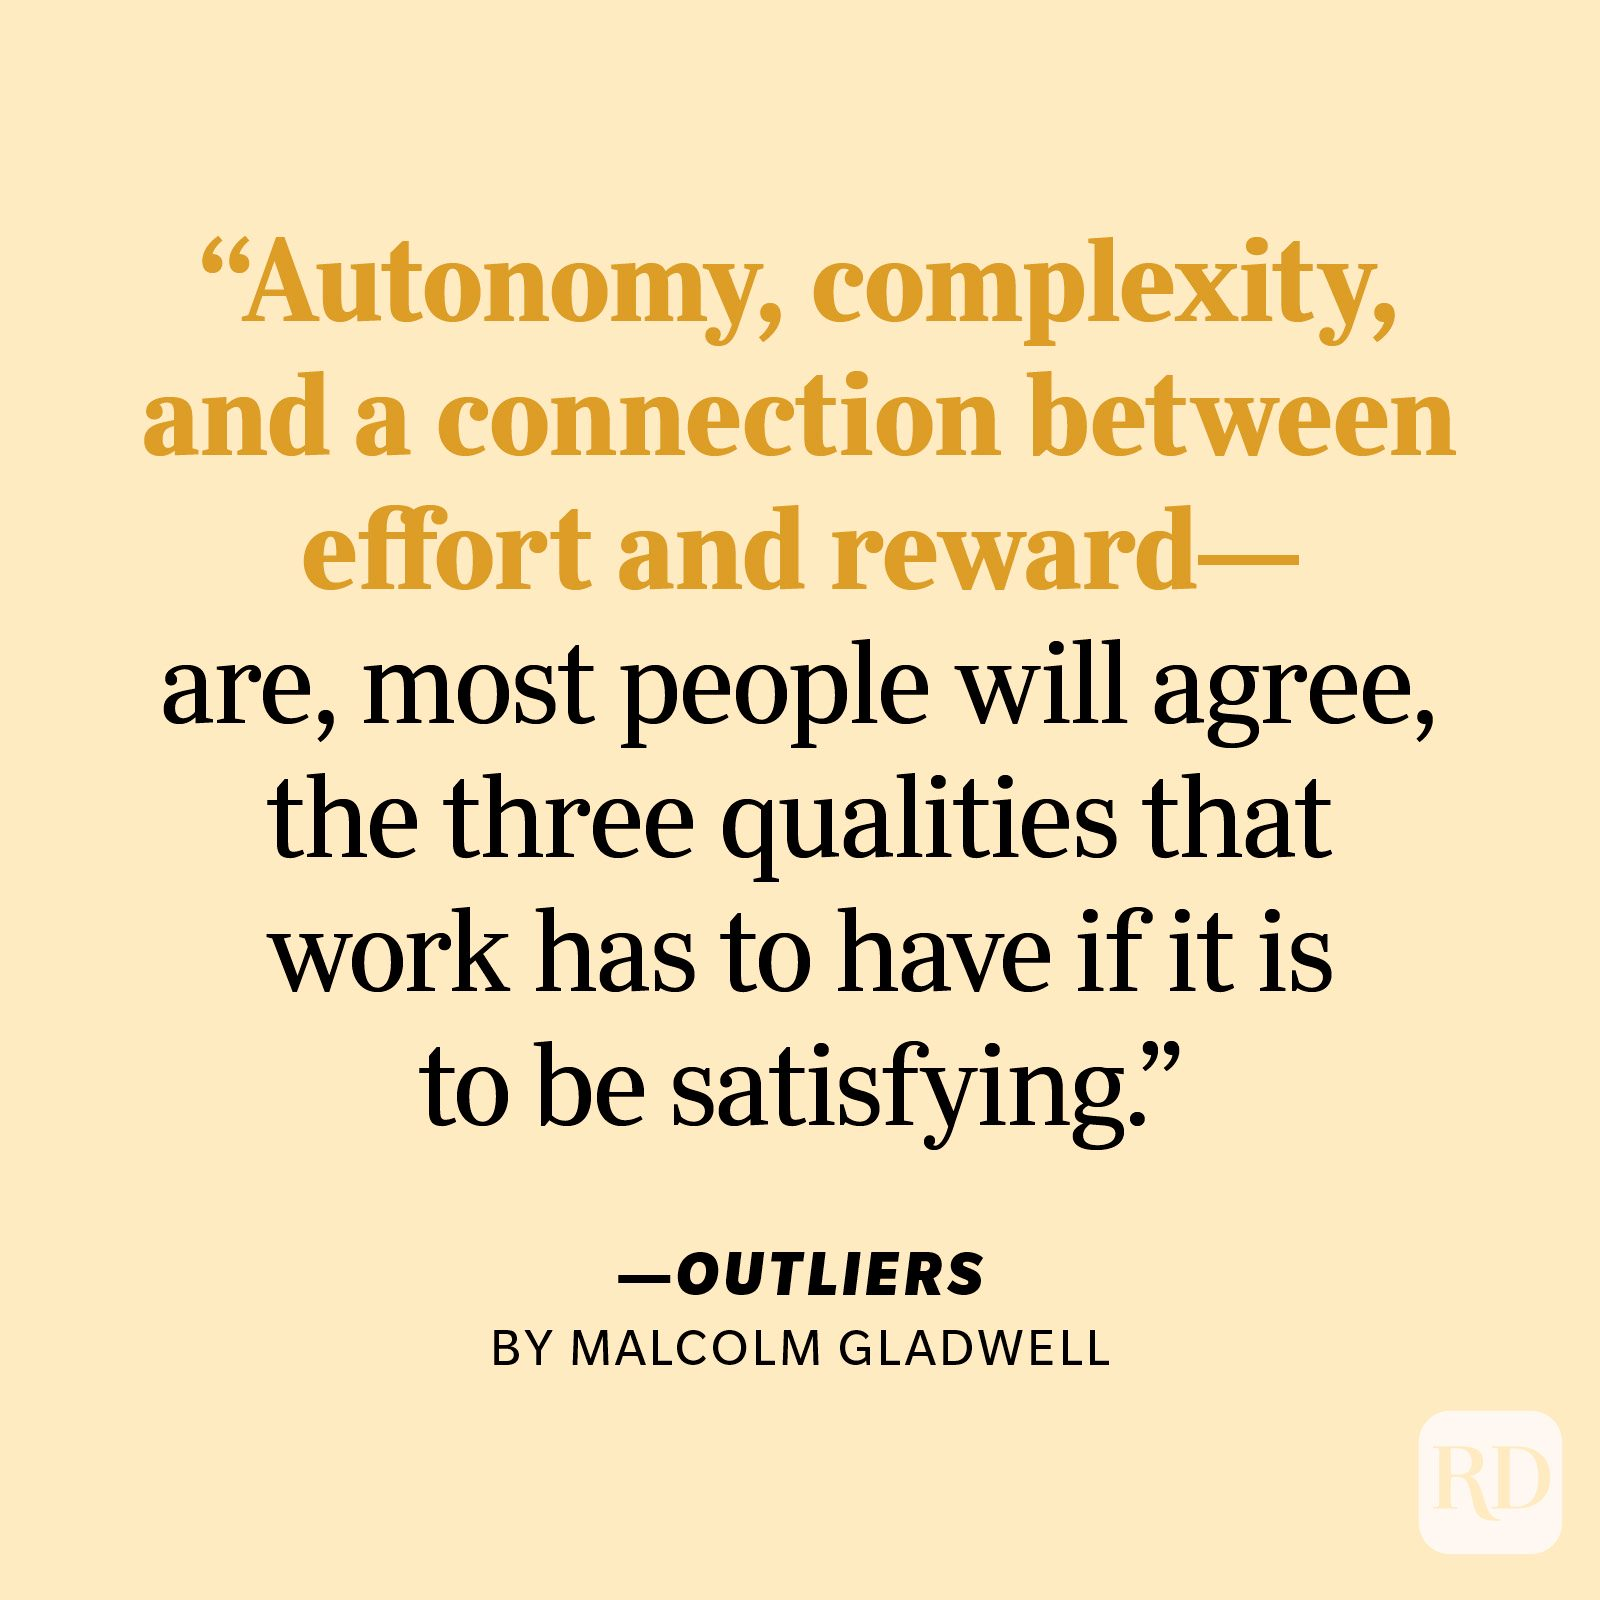 """Outliers by Malcolm Gladwell """"Autonomy, complexity, and a connection between effort and reward—are, most people will agree, the three qualities that work has to have if it is to be satisfying."""""""